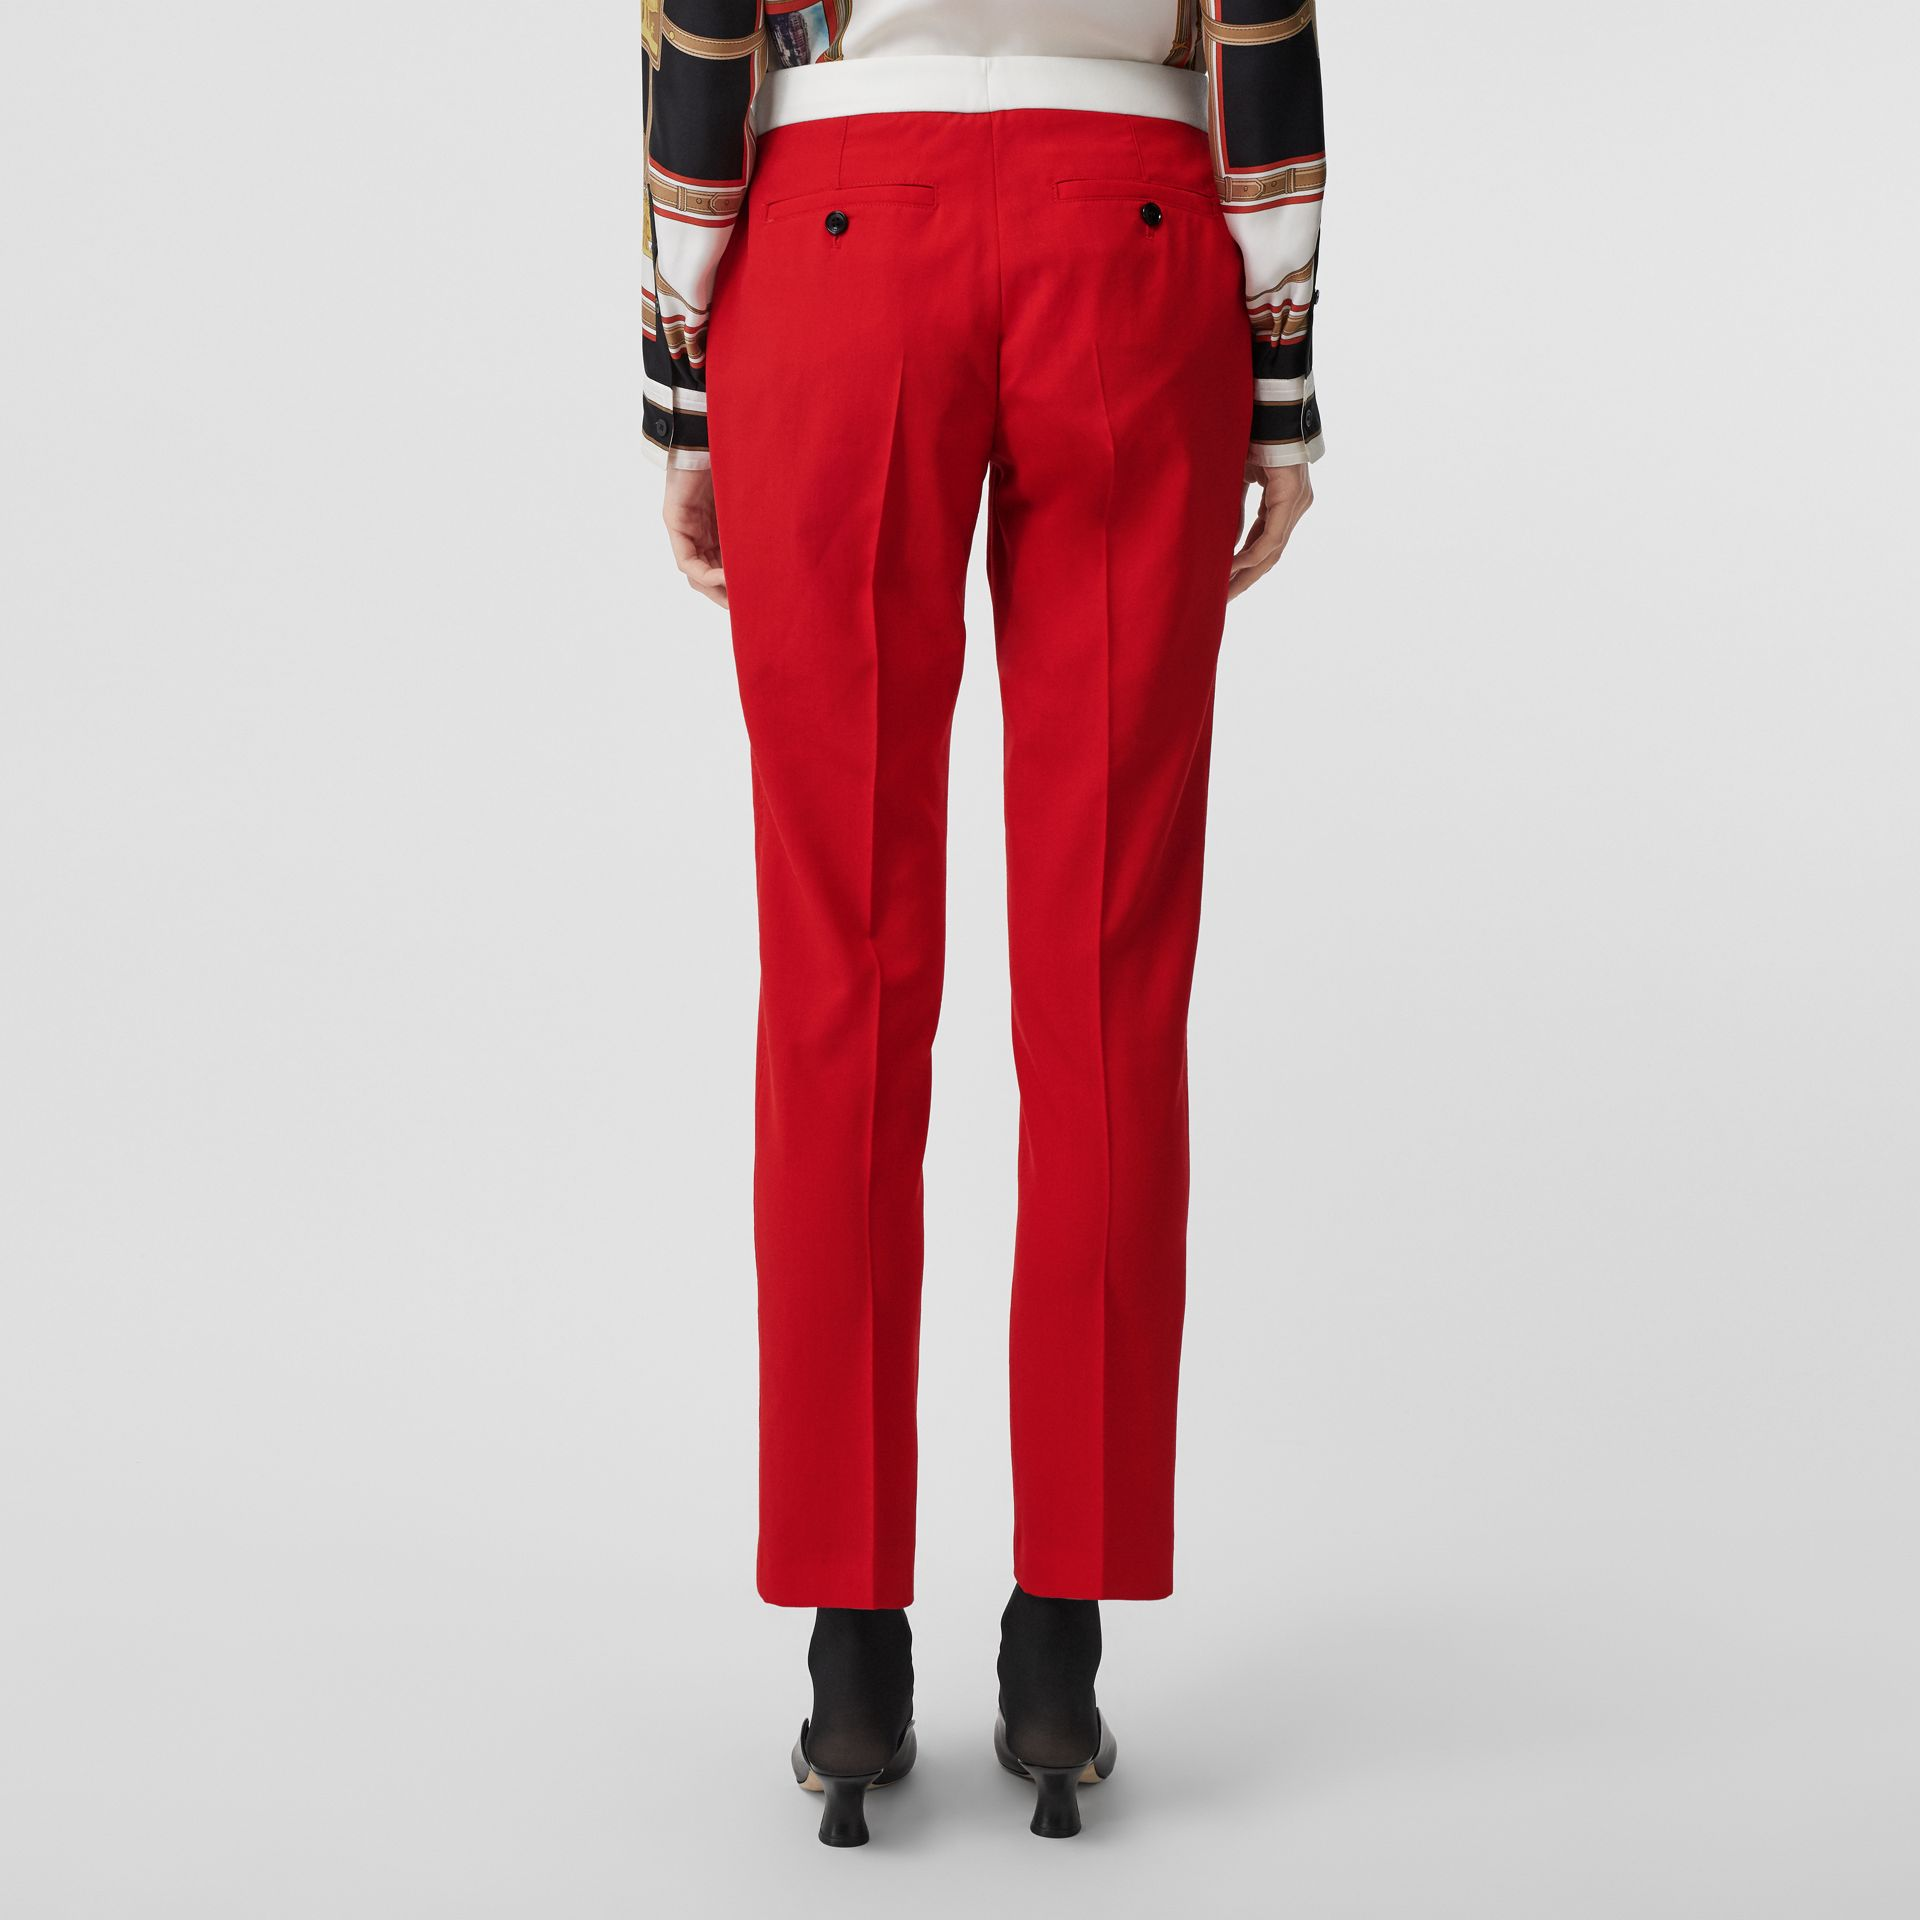 Two-tone Wool Tailored Trousers in Bright Red - Women | Burberry United States - gallery image 2